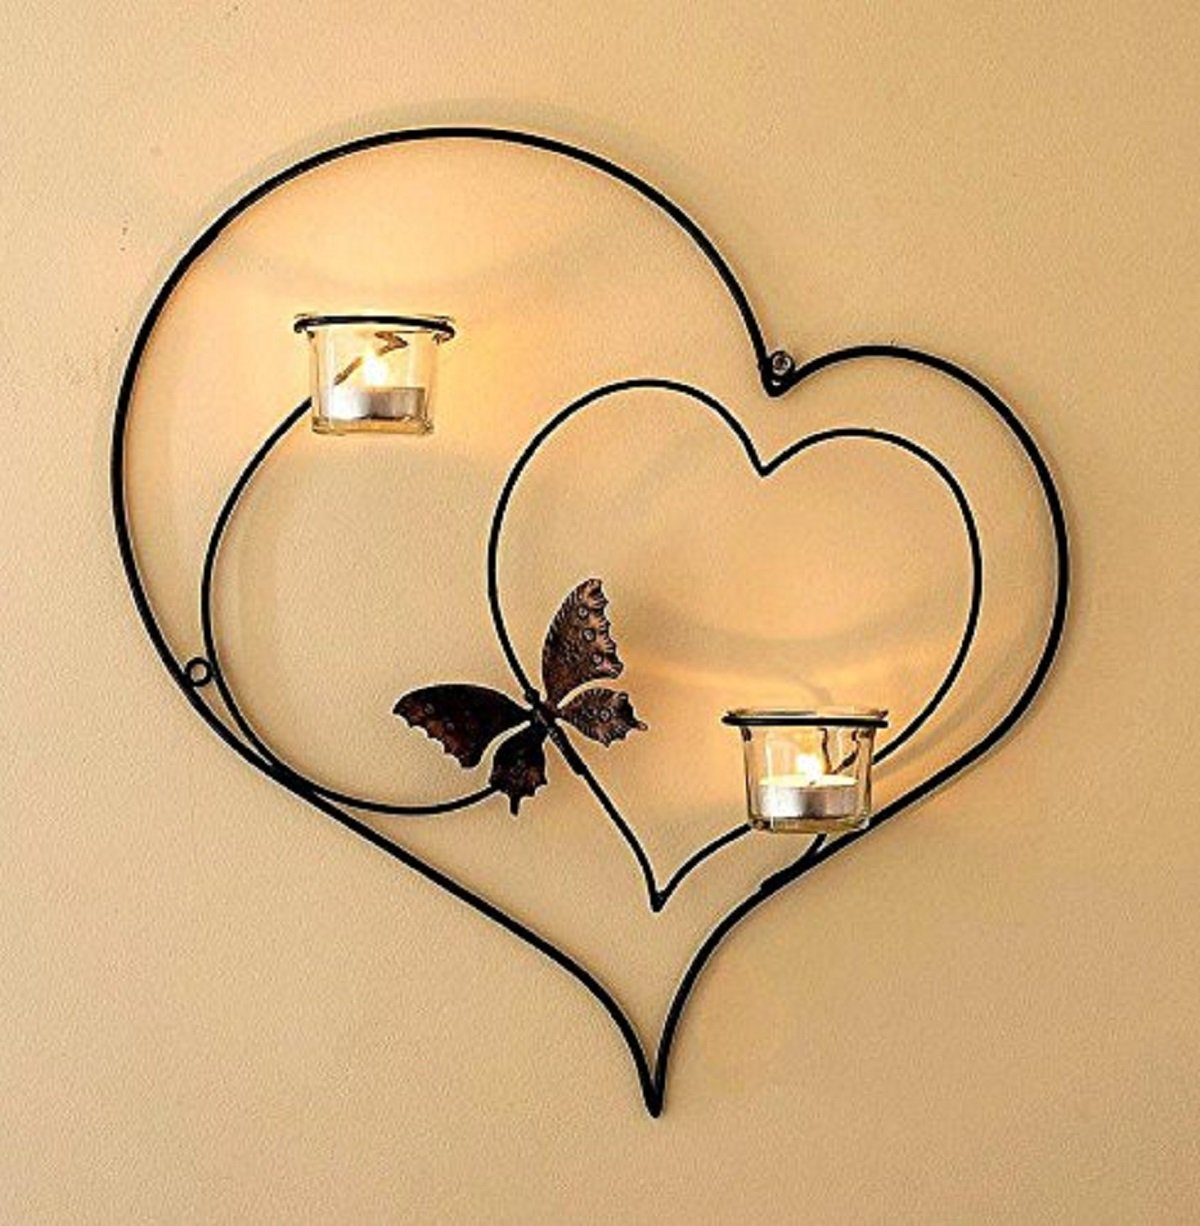 CraftVatika Iron Decorative Double Heart Wall Sconce Candle Holder Hanging Tealight Holders Home Arts Weddings Events Decor